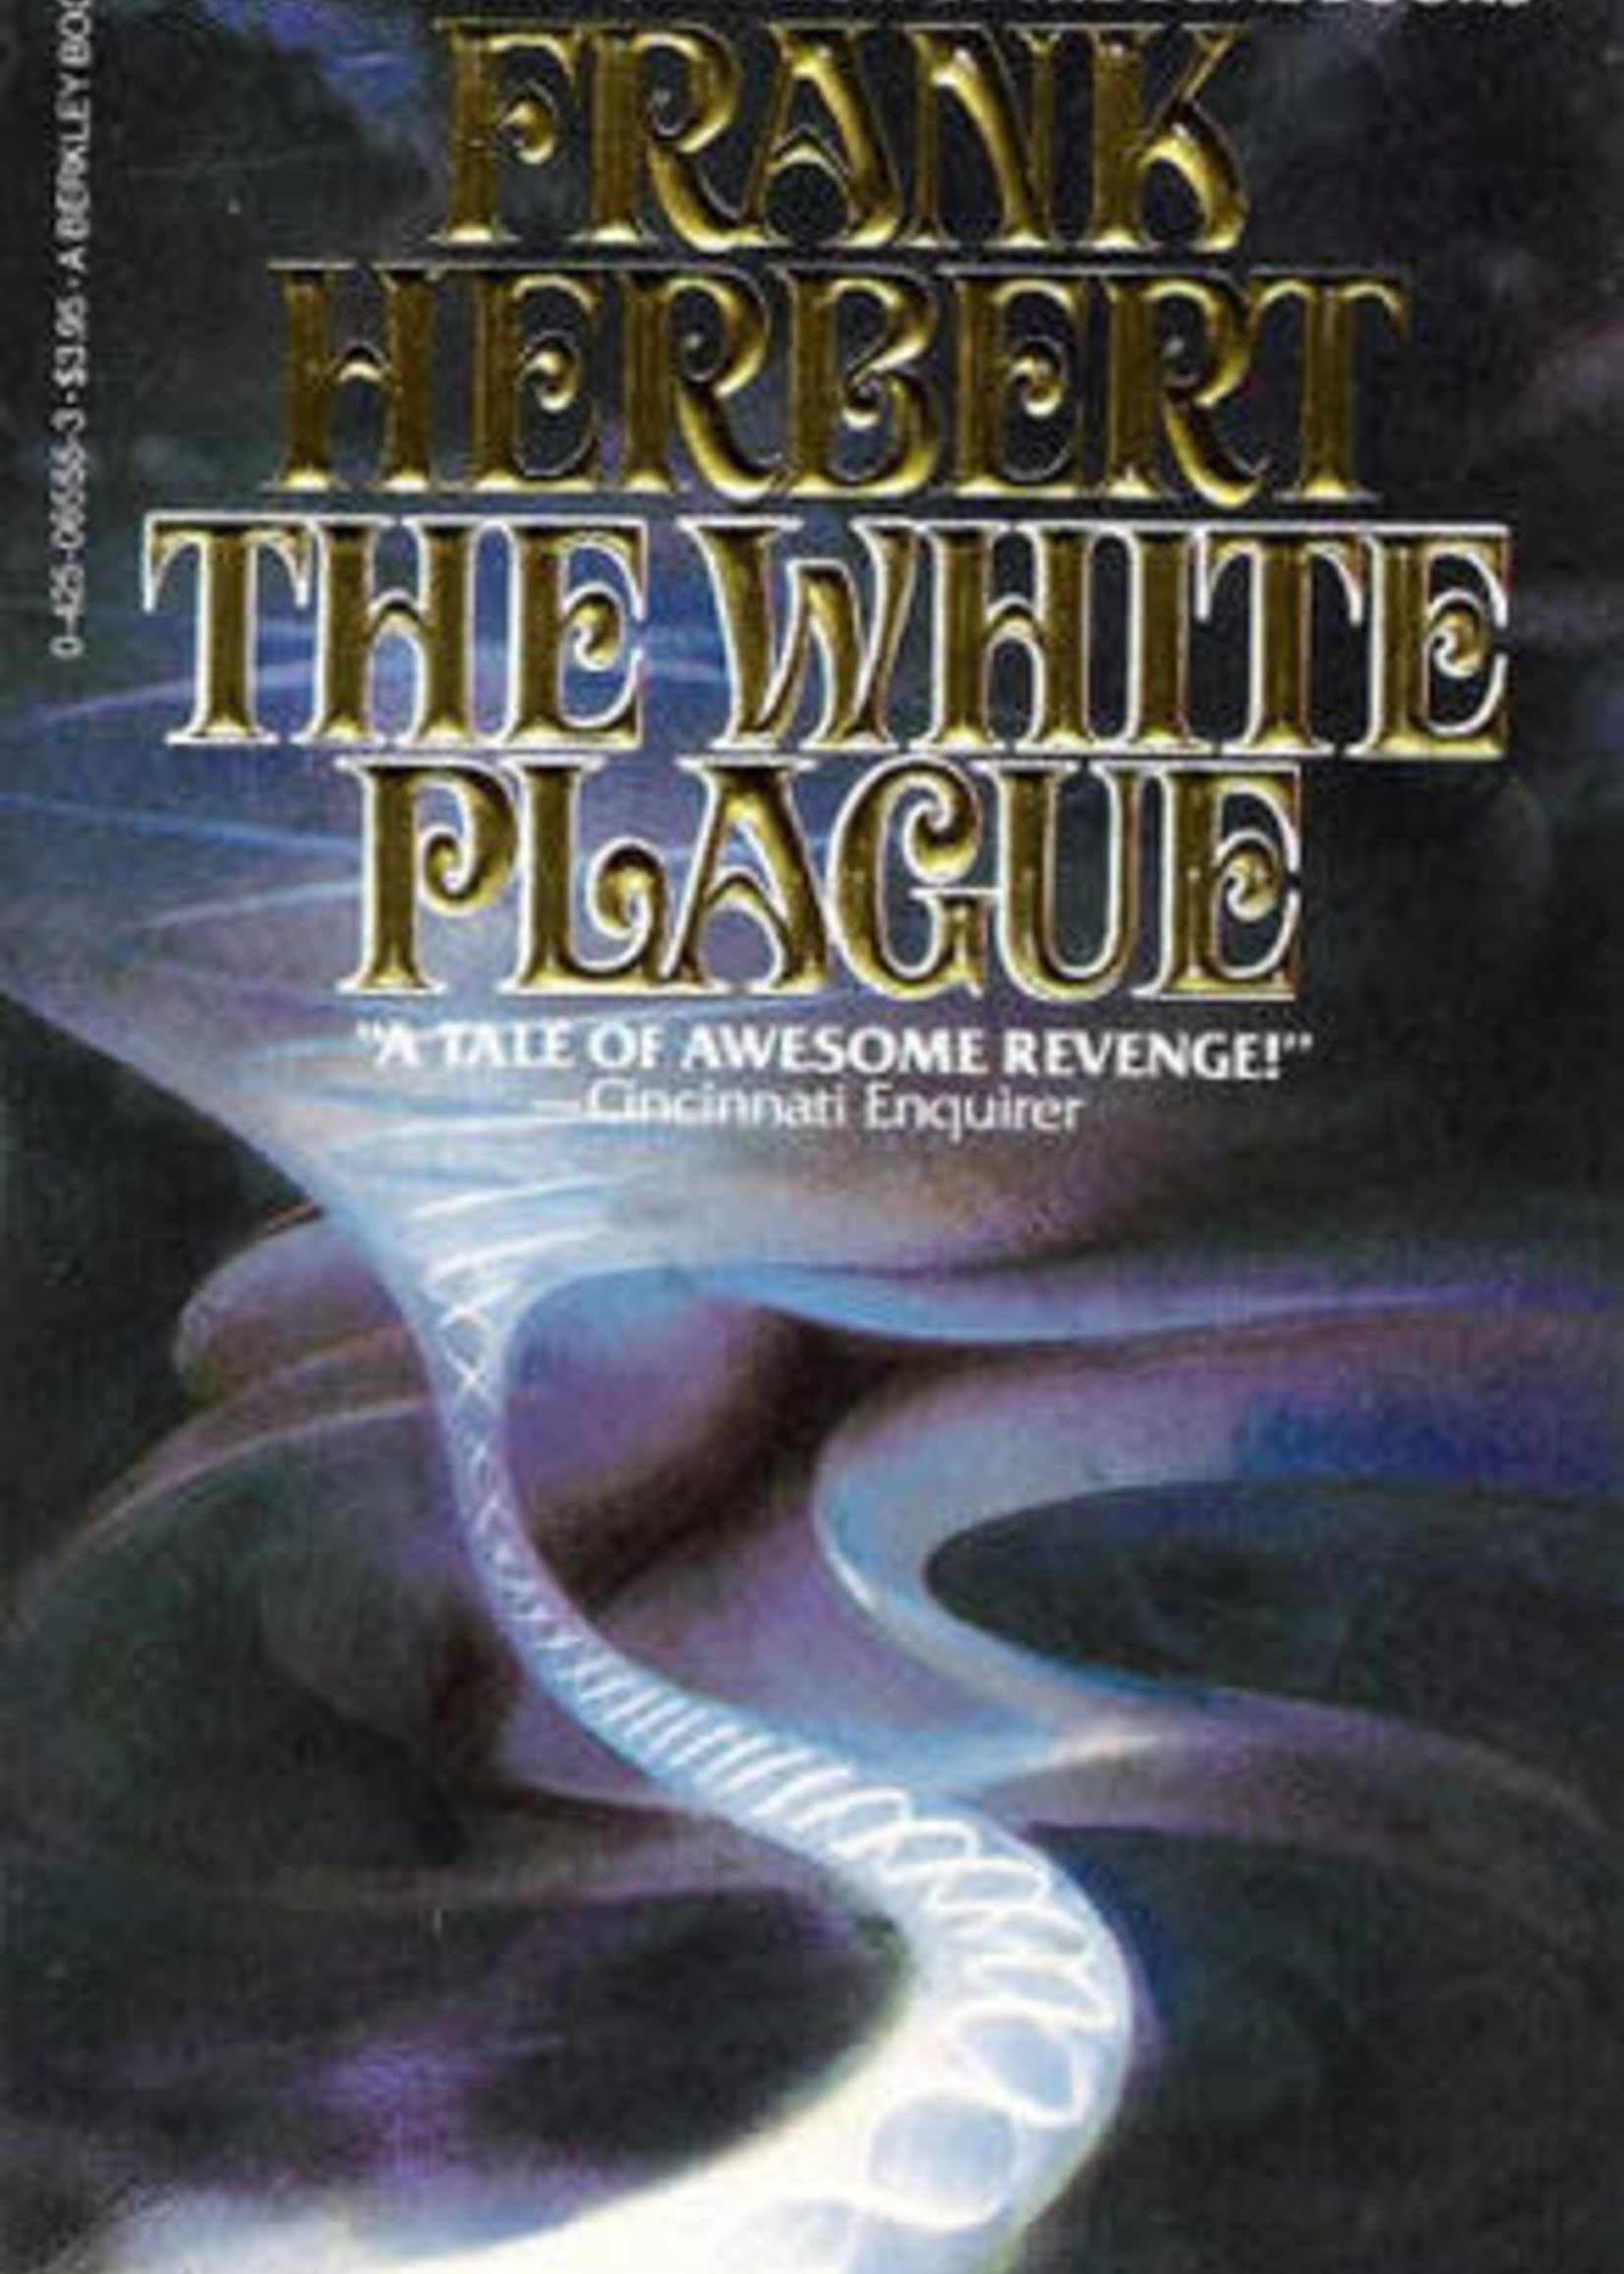 USED - The White Plague by Frank Herbert